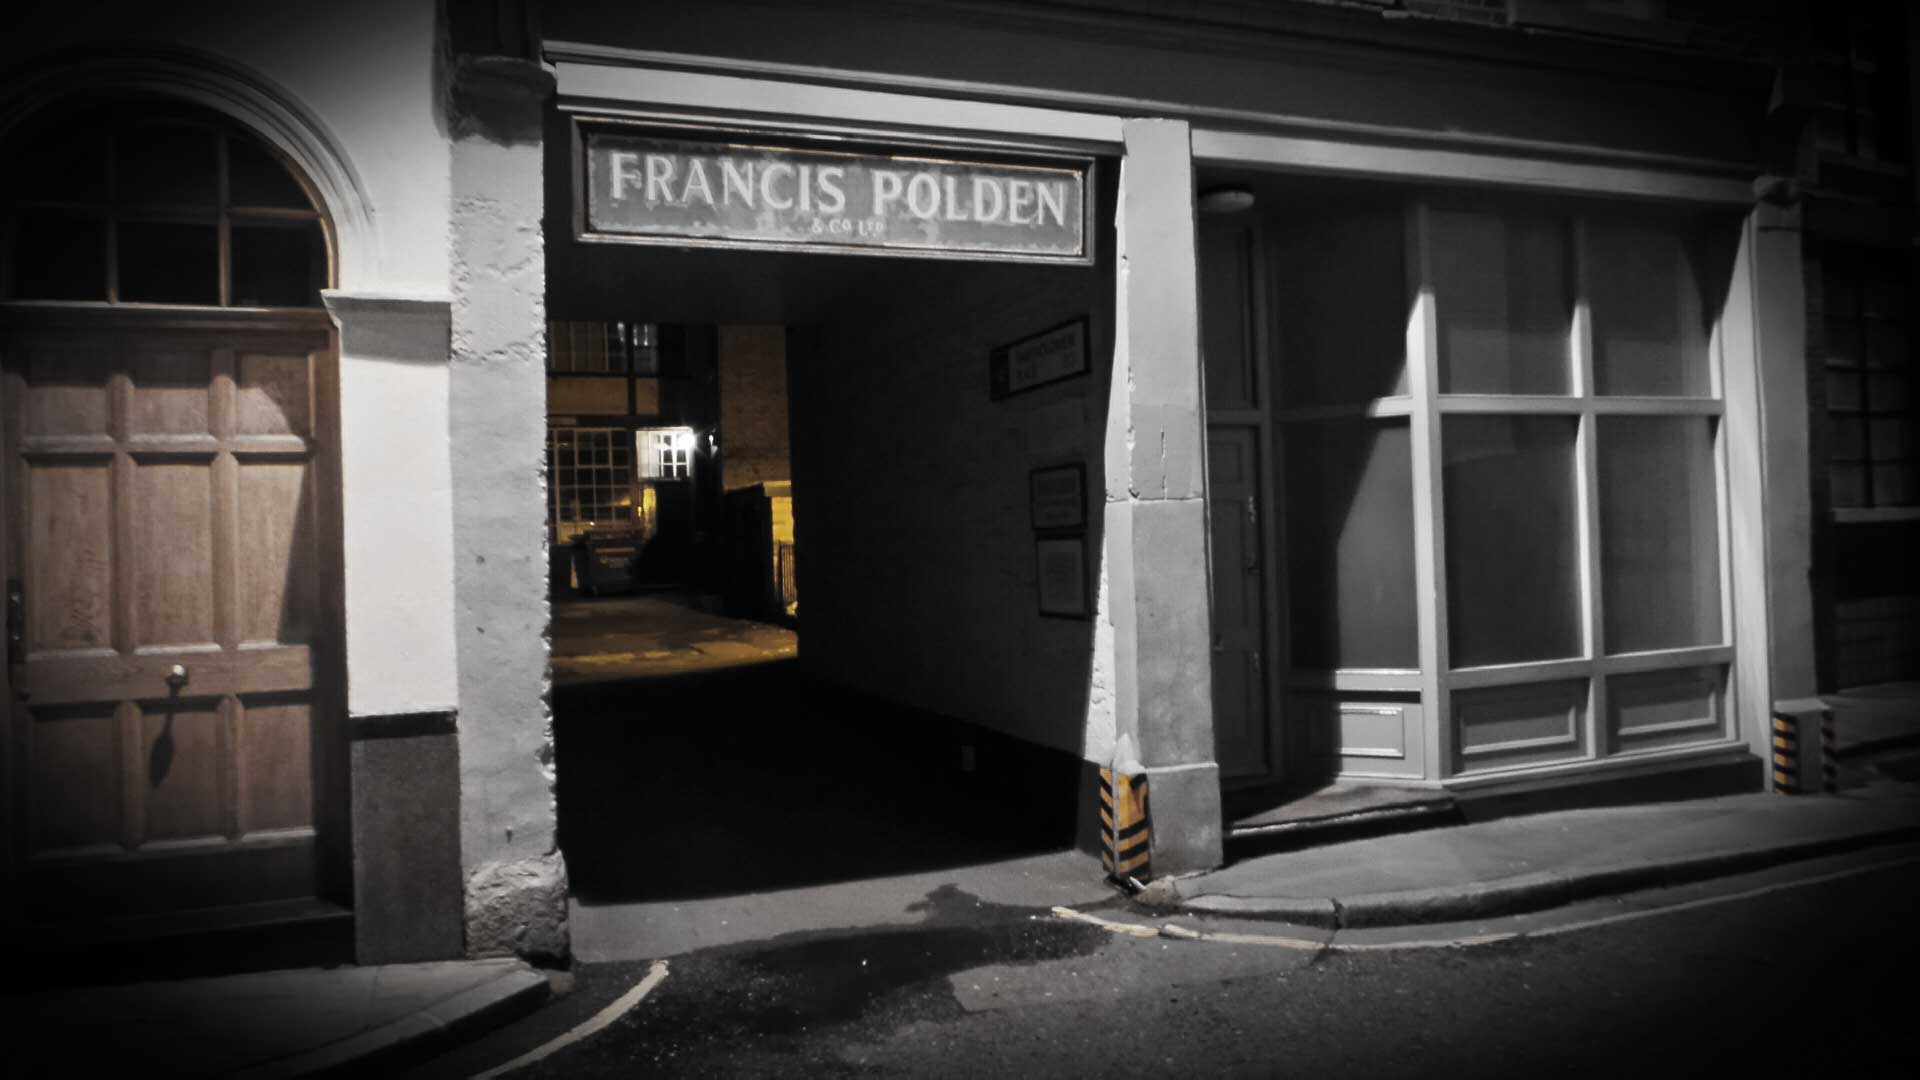 The sign for Francis Polden's premises.